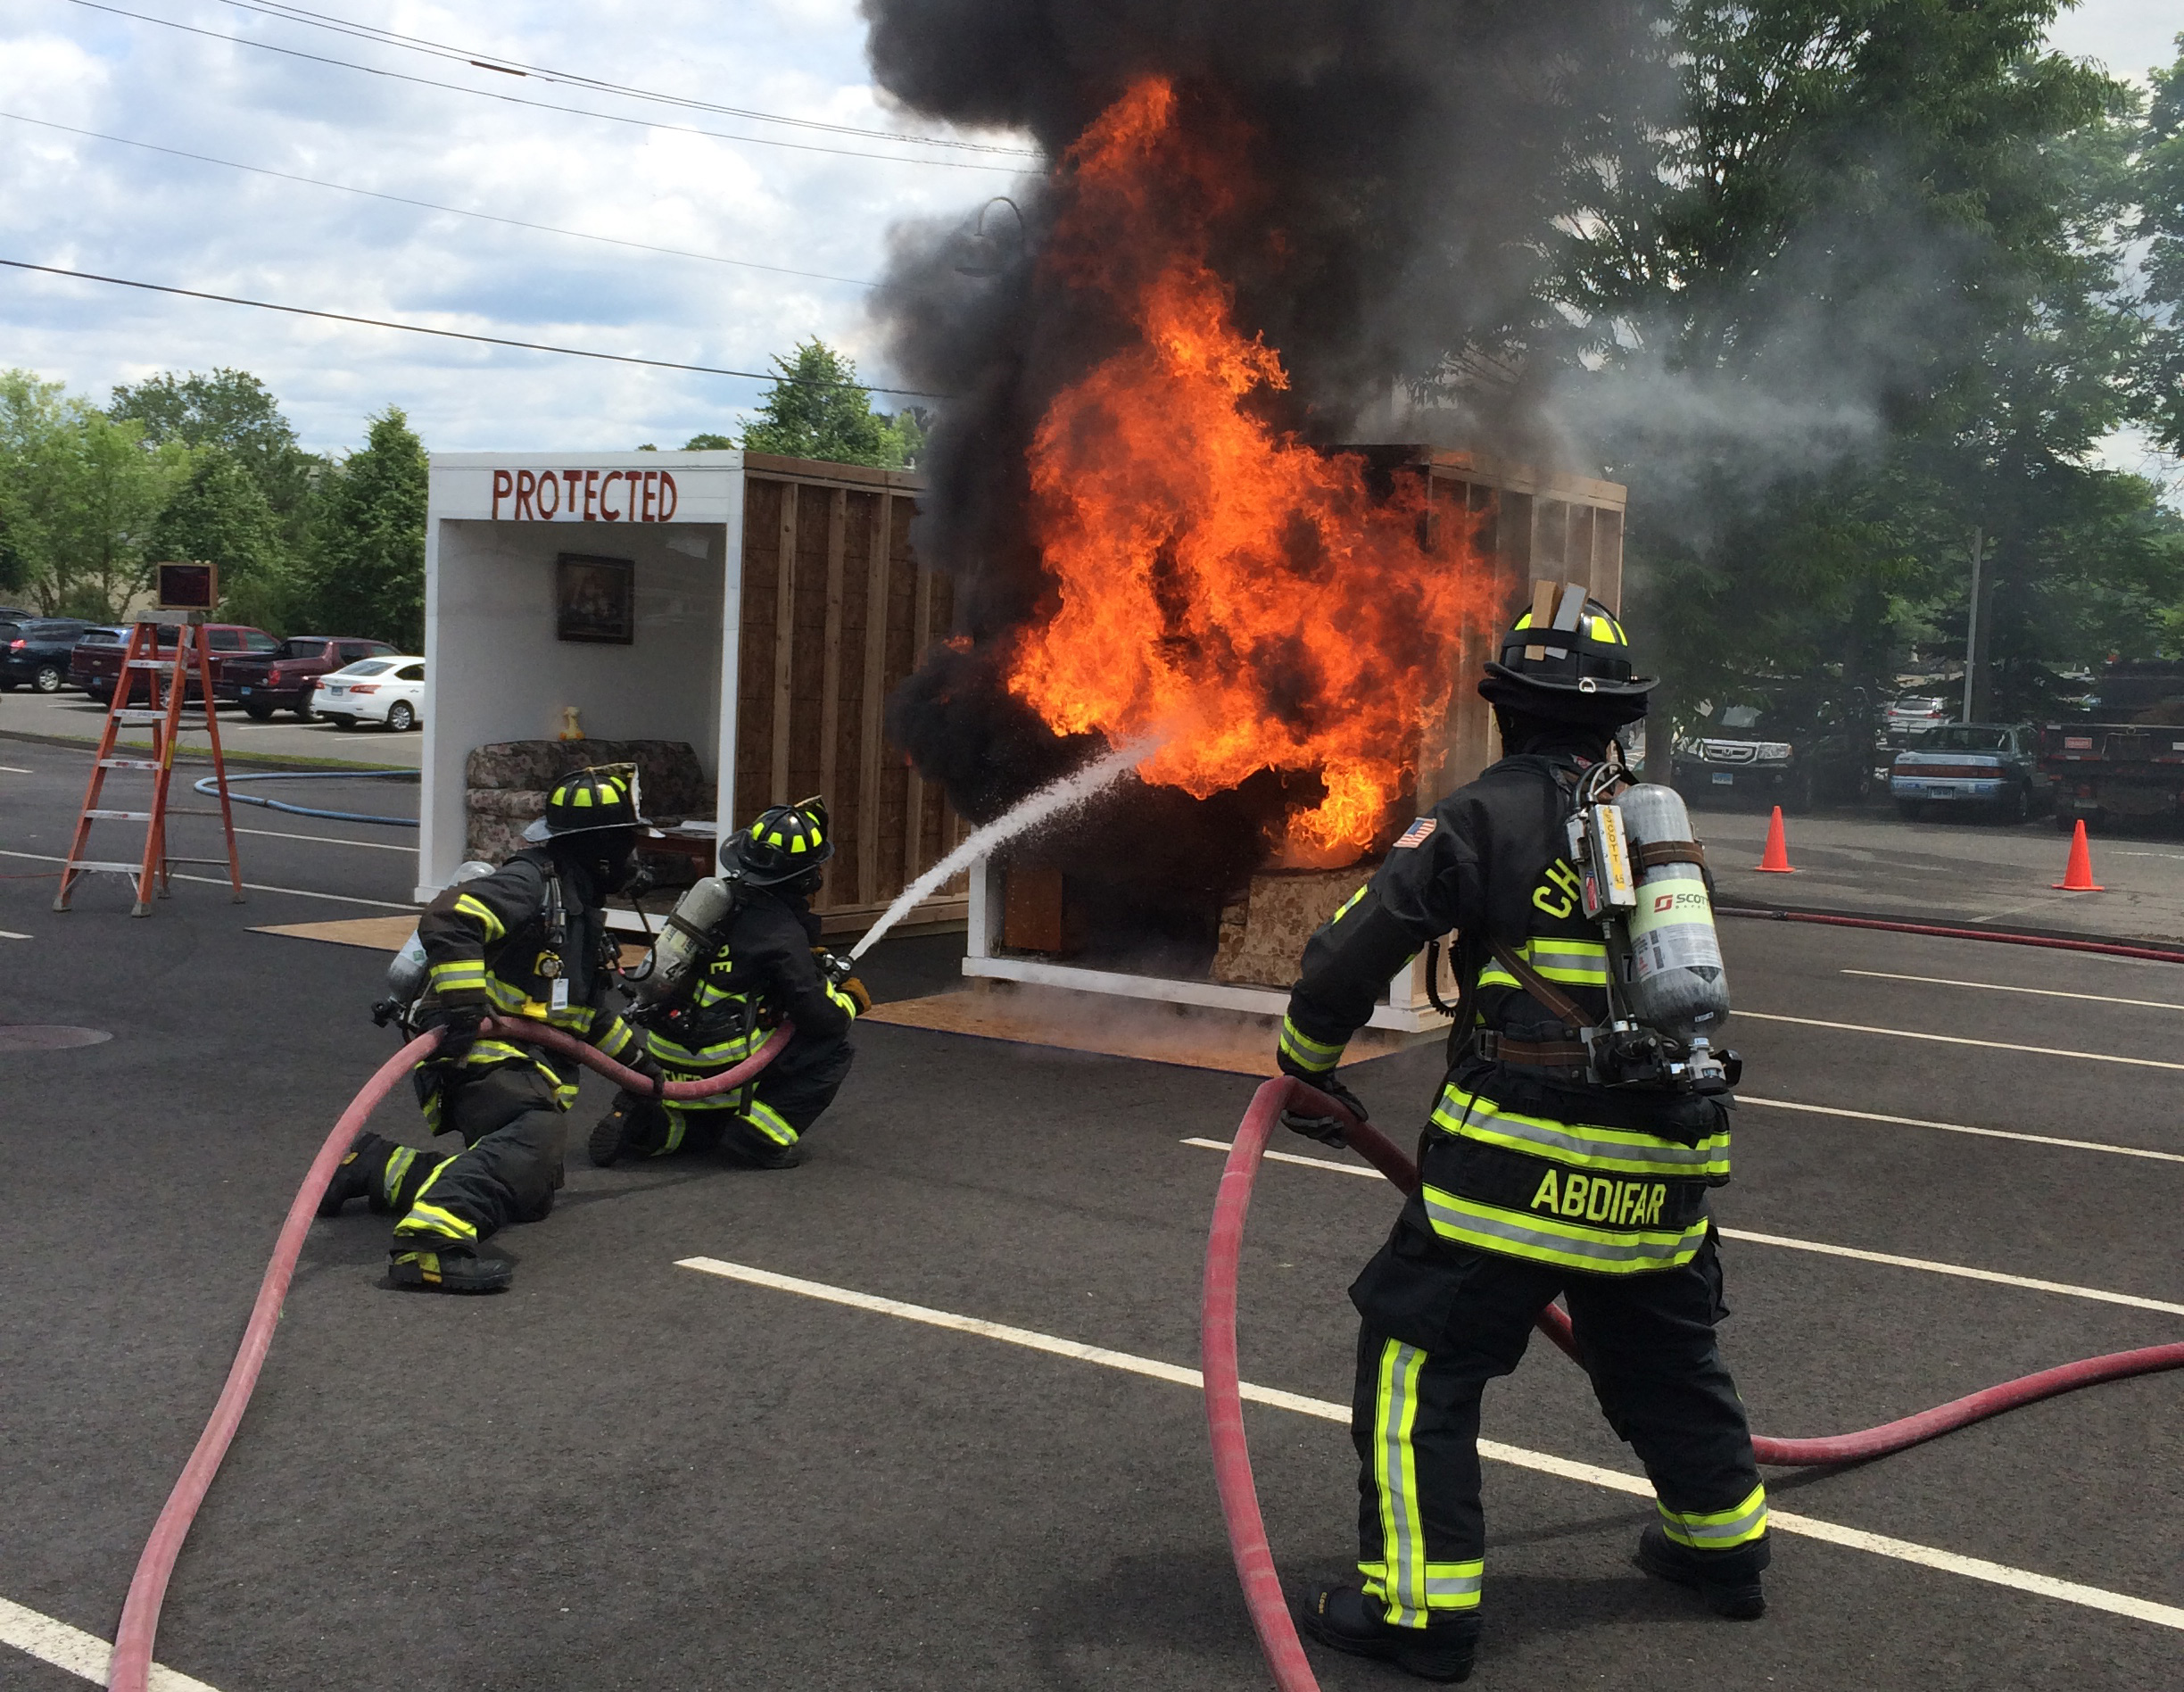 Connecticut Fire Sprinkler Coalition burn and sprinkler demo